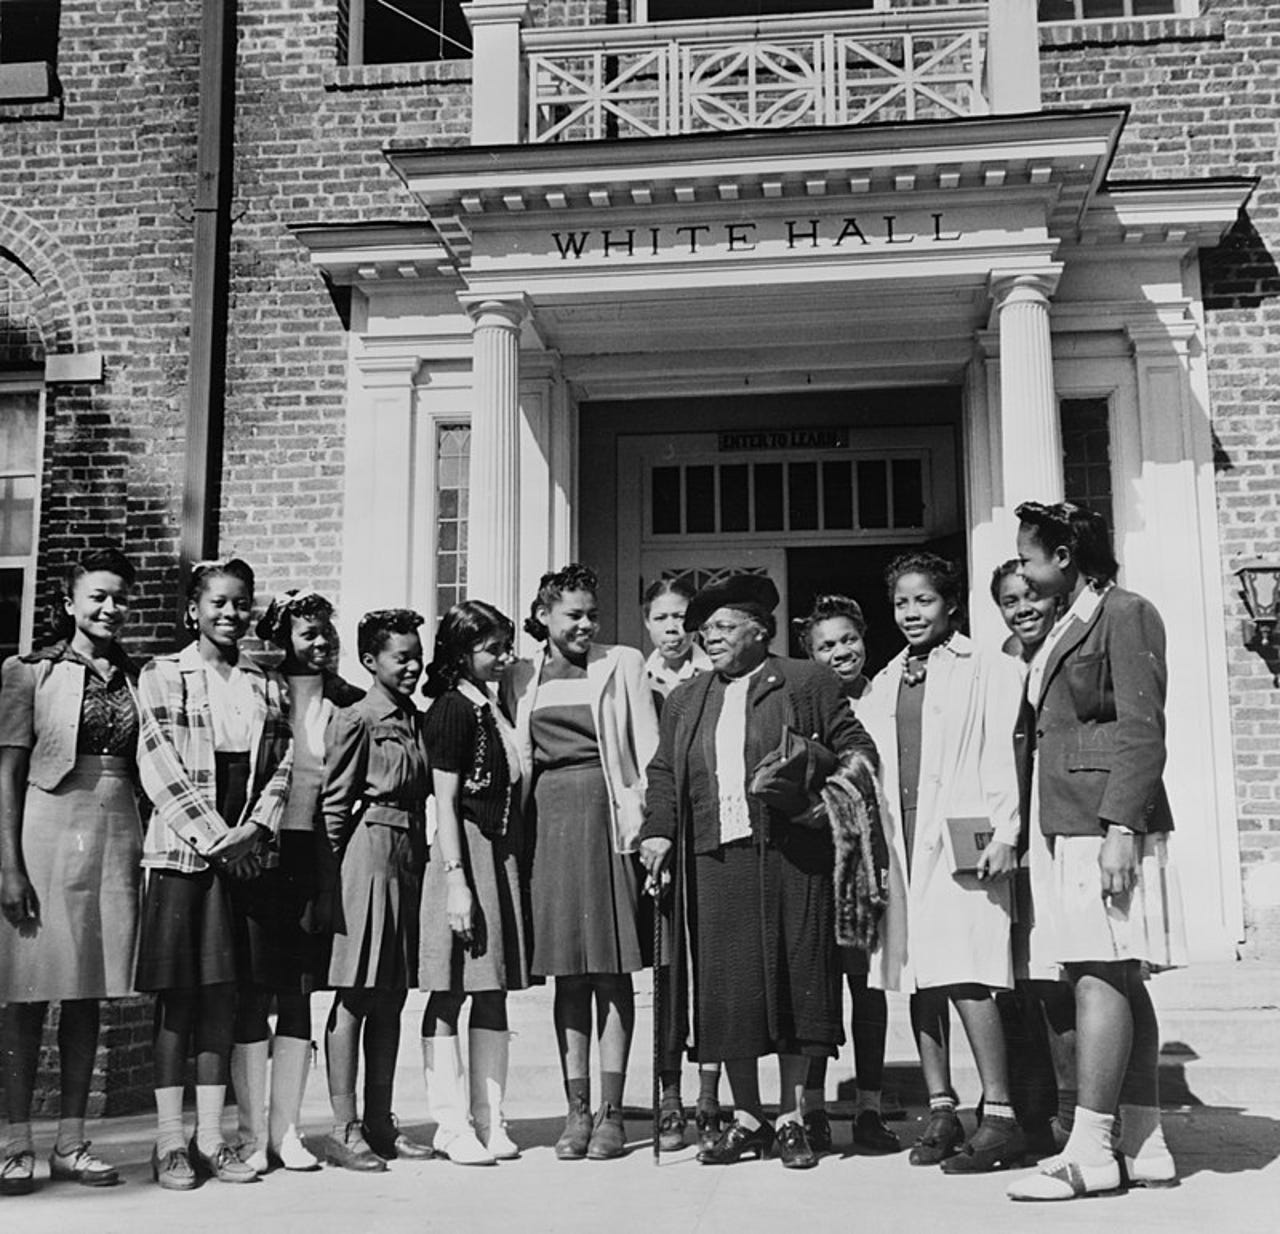 Mary McLeod Bethune outside White Hall in 1943 with a group of female students at Bethune Cookman University in Daytona Beach.